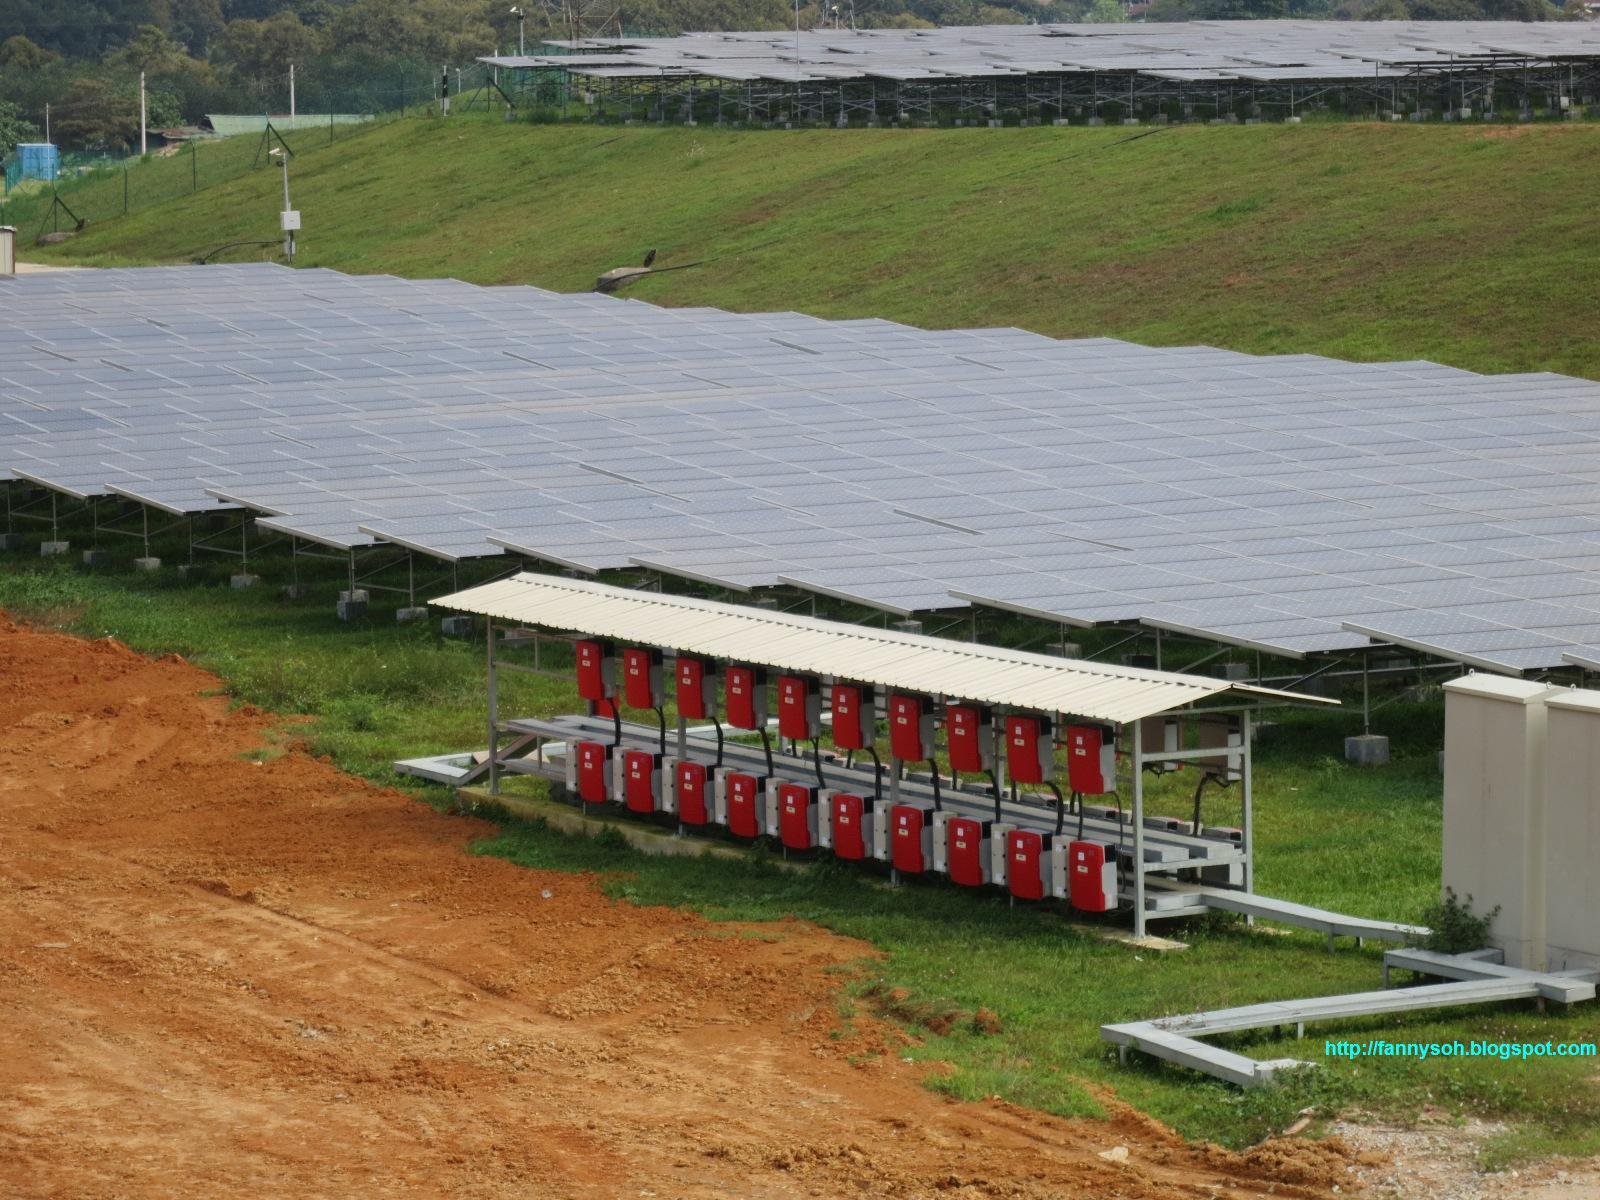 Solar Farm Malaysia The Biggest Solar Farm or Grid